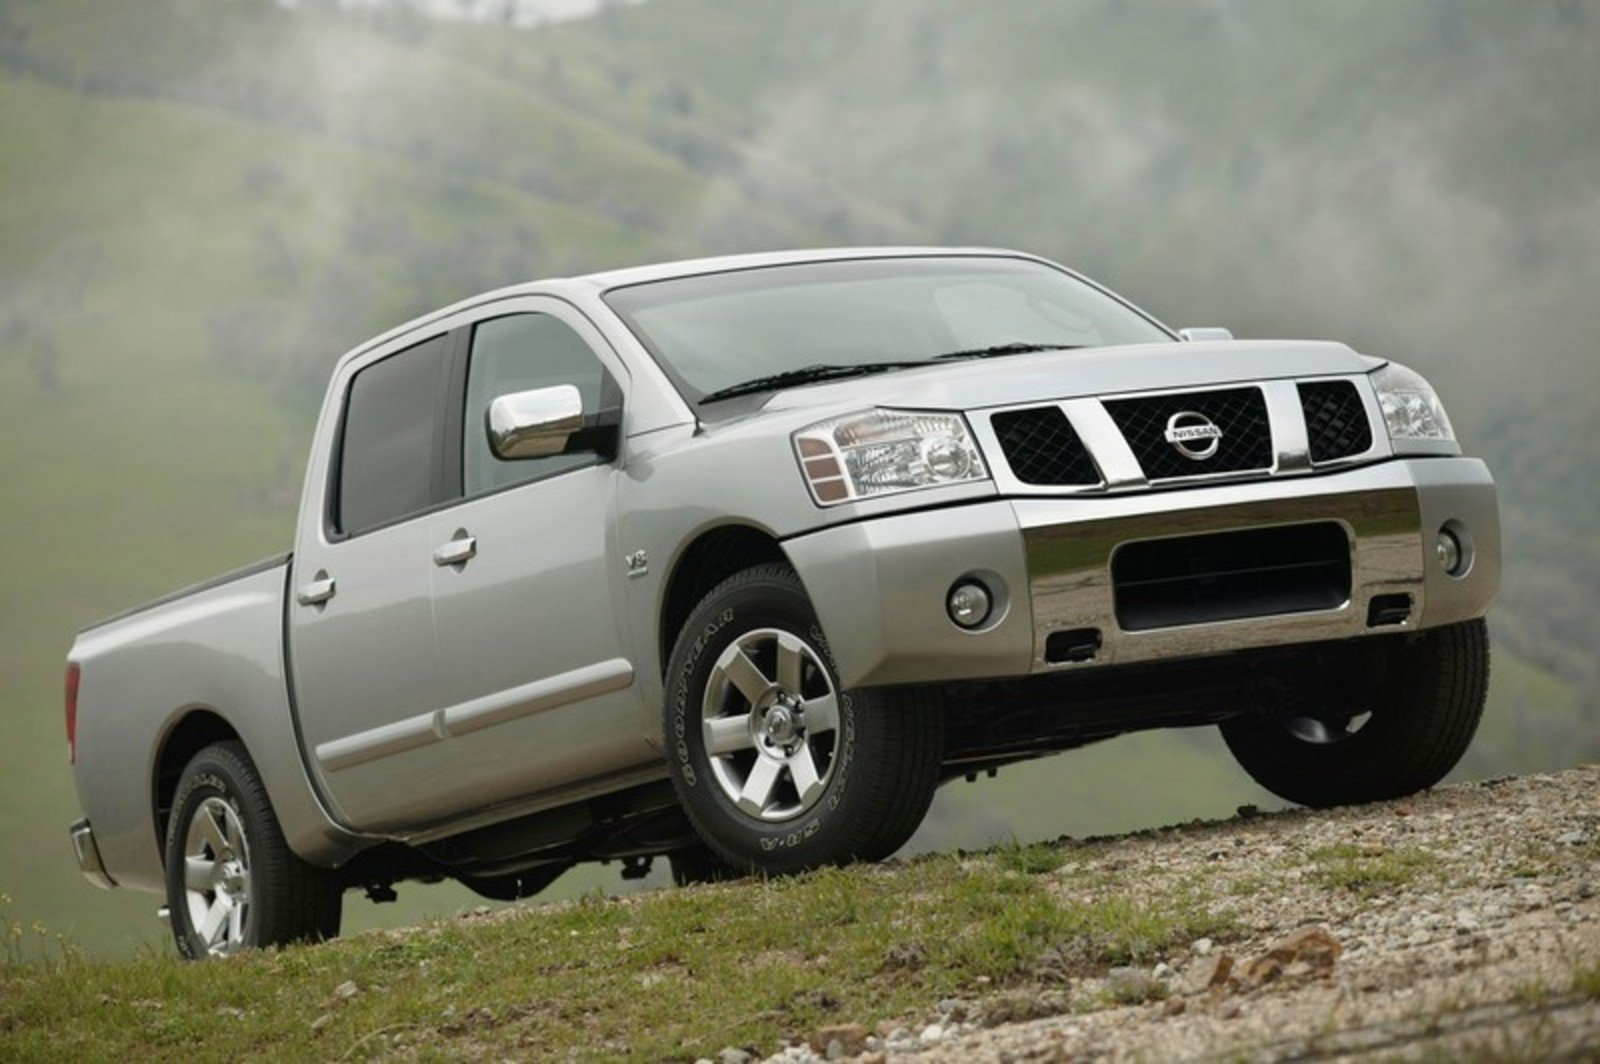 2006 nissan titan crew cab picture 94440 car review top speed. Black Bedroom Furniture Sets. Home Design Ideas